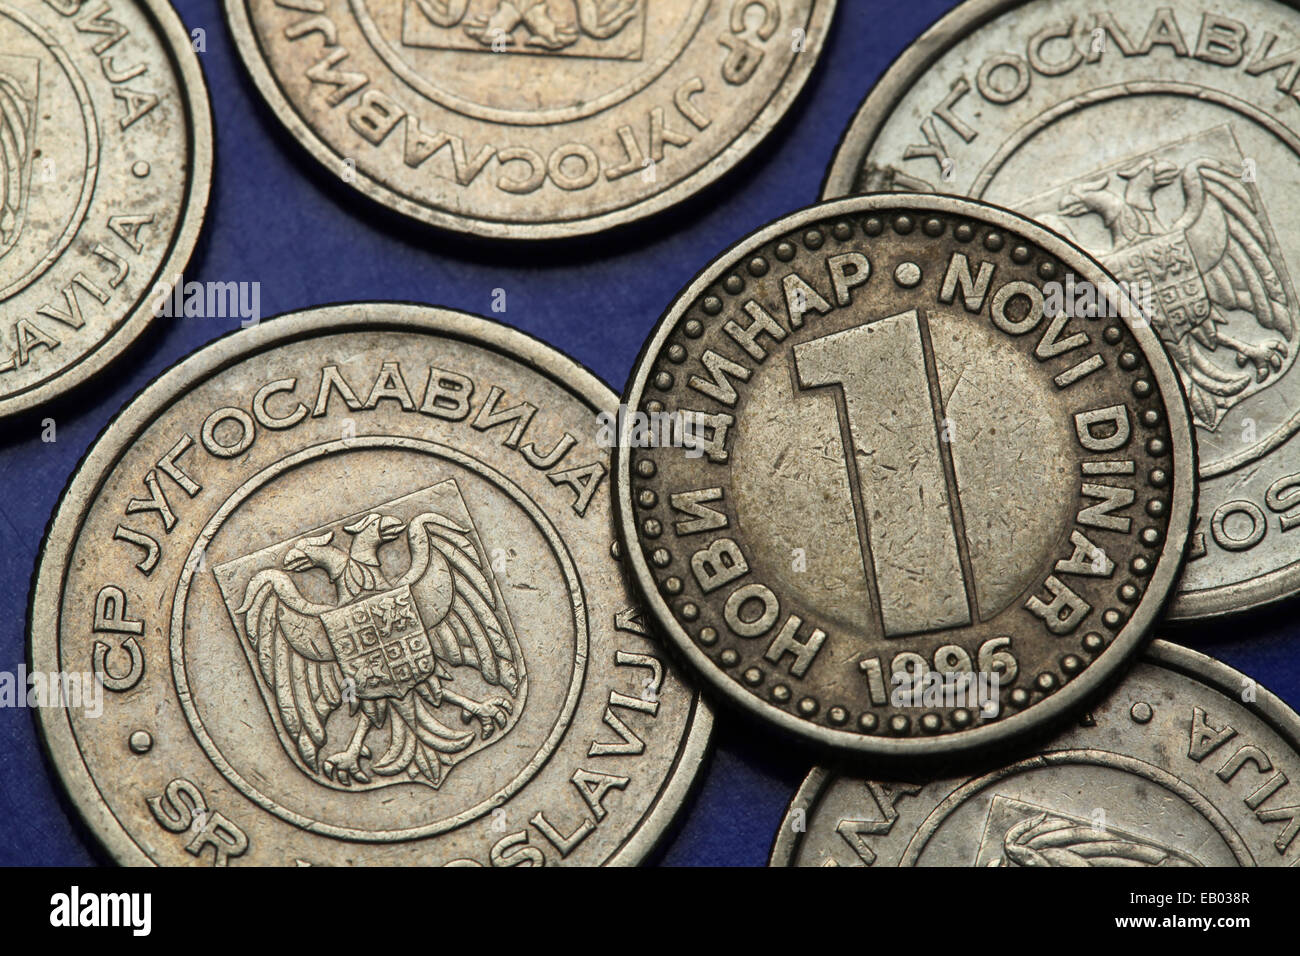 Federal Republic Of Yugoslavia Stock Photos Federal Republic Of